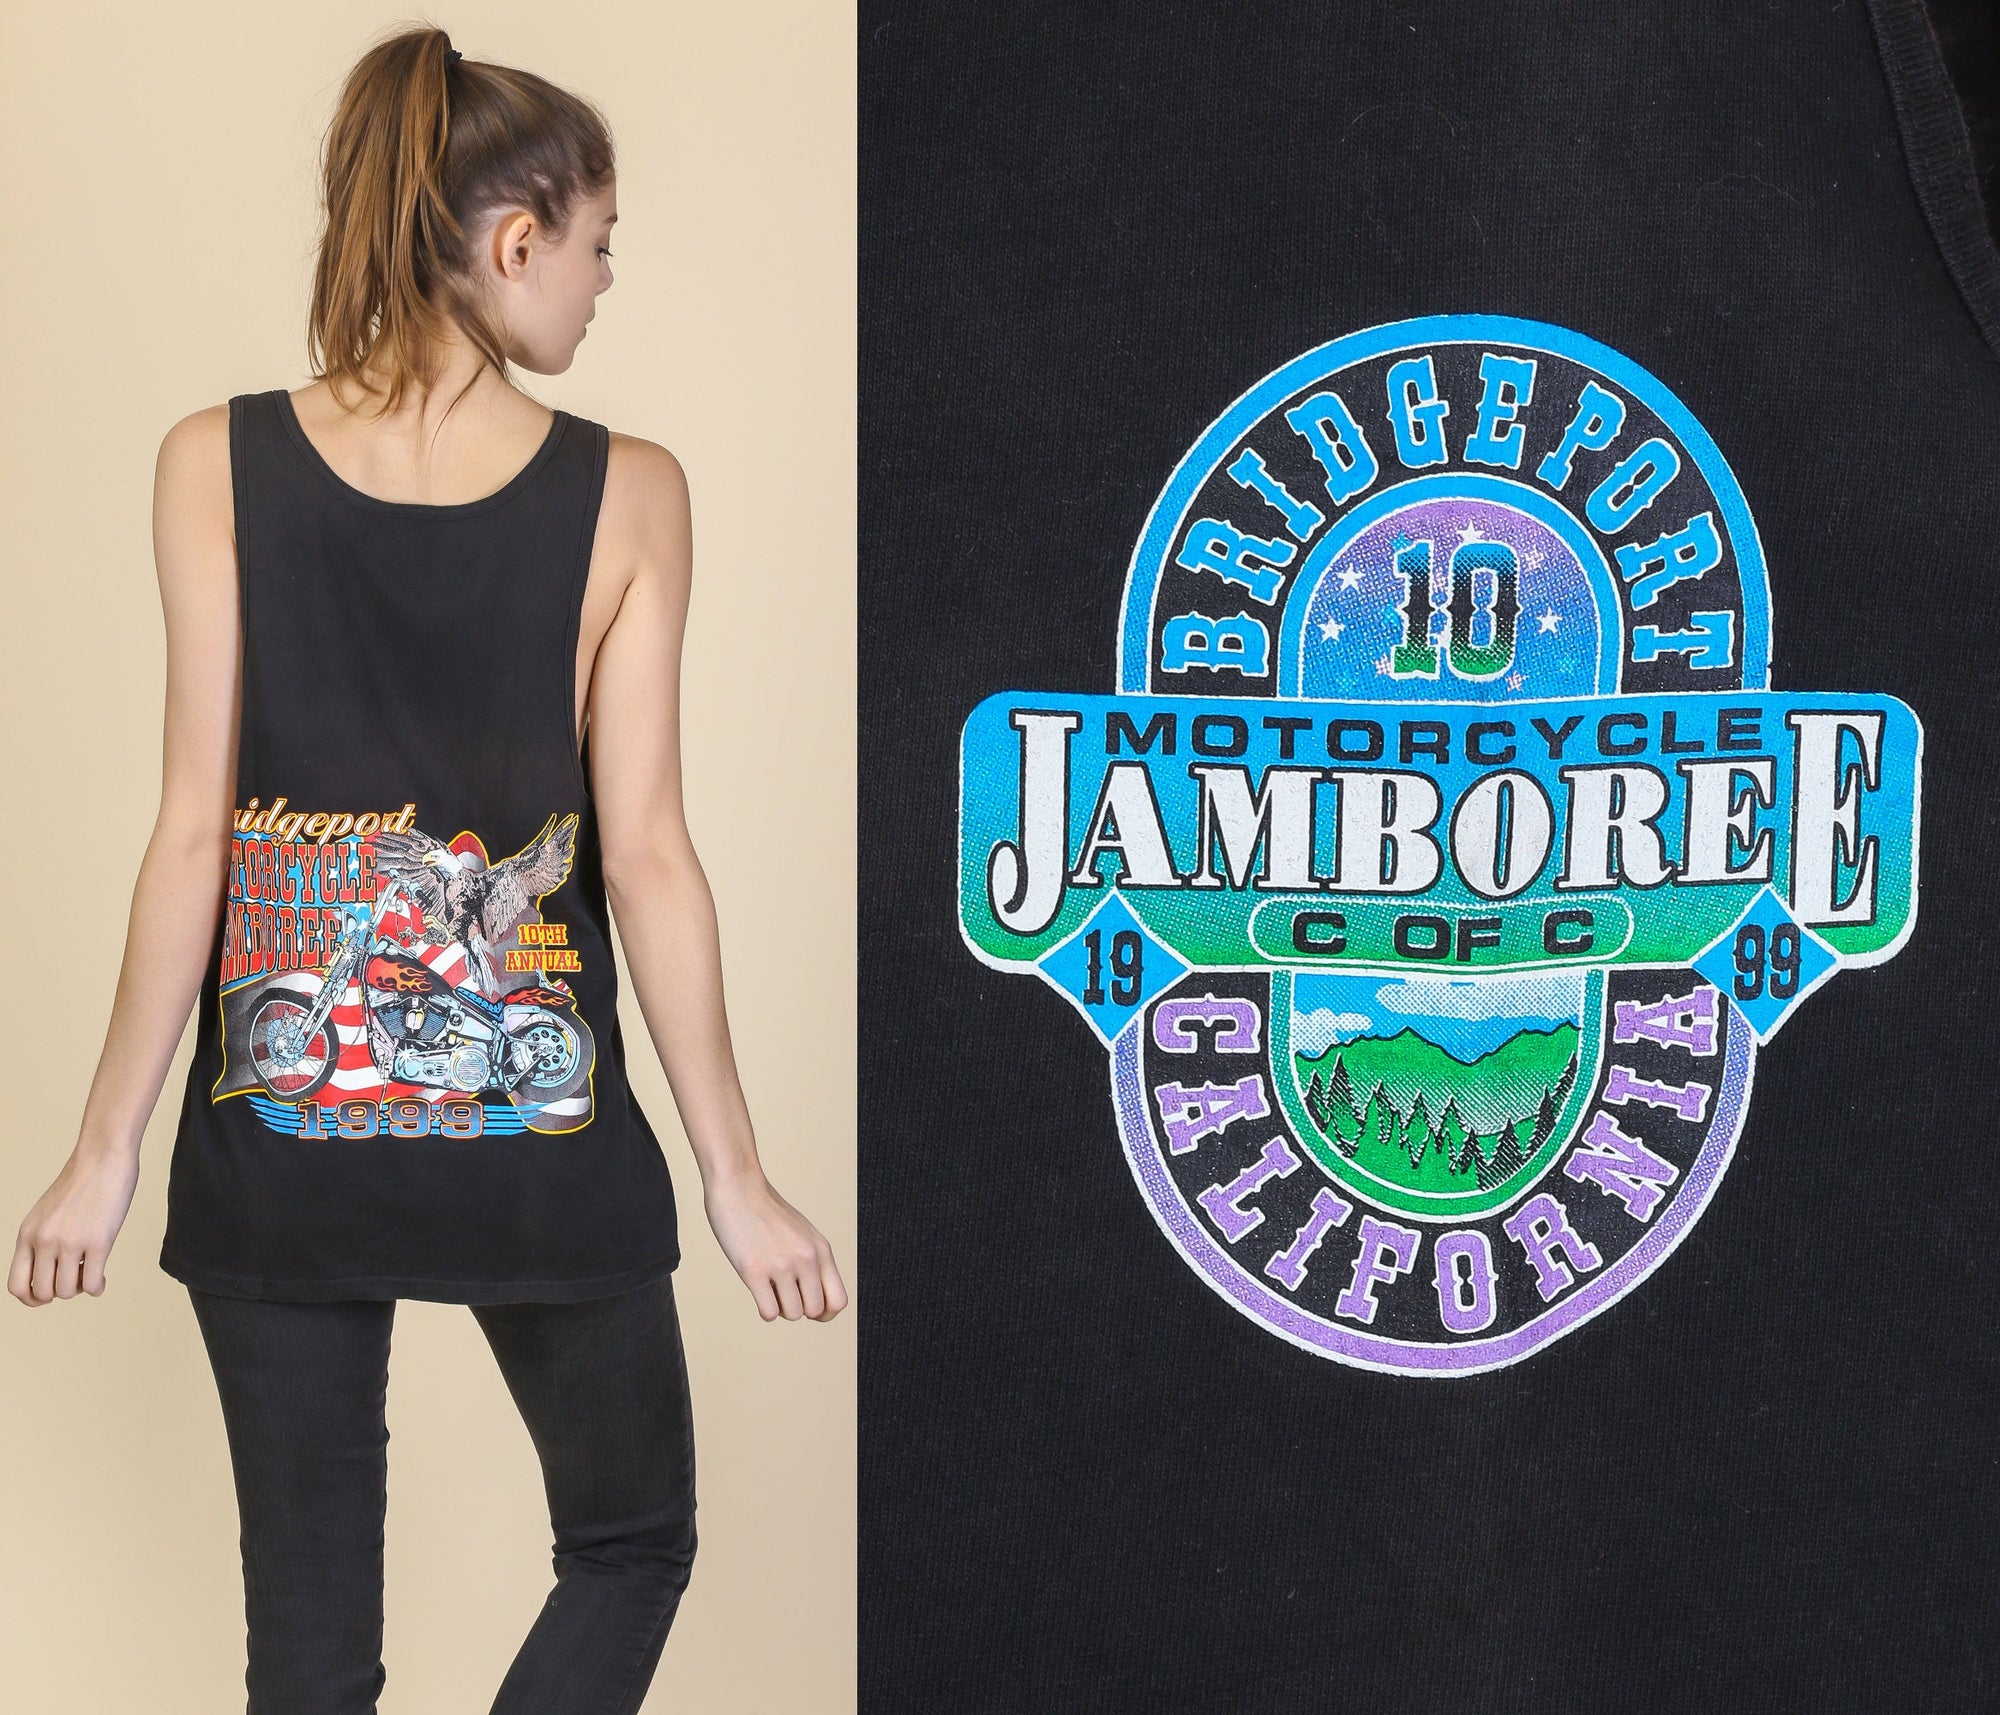 90s Bridgeport Motorcycle Jamboree Tank - Men's Medium